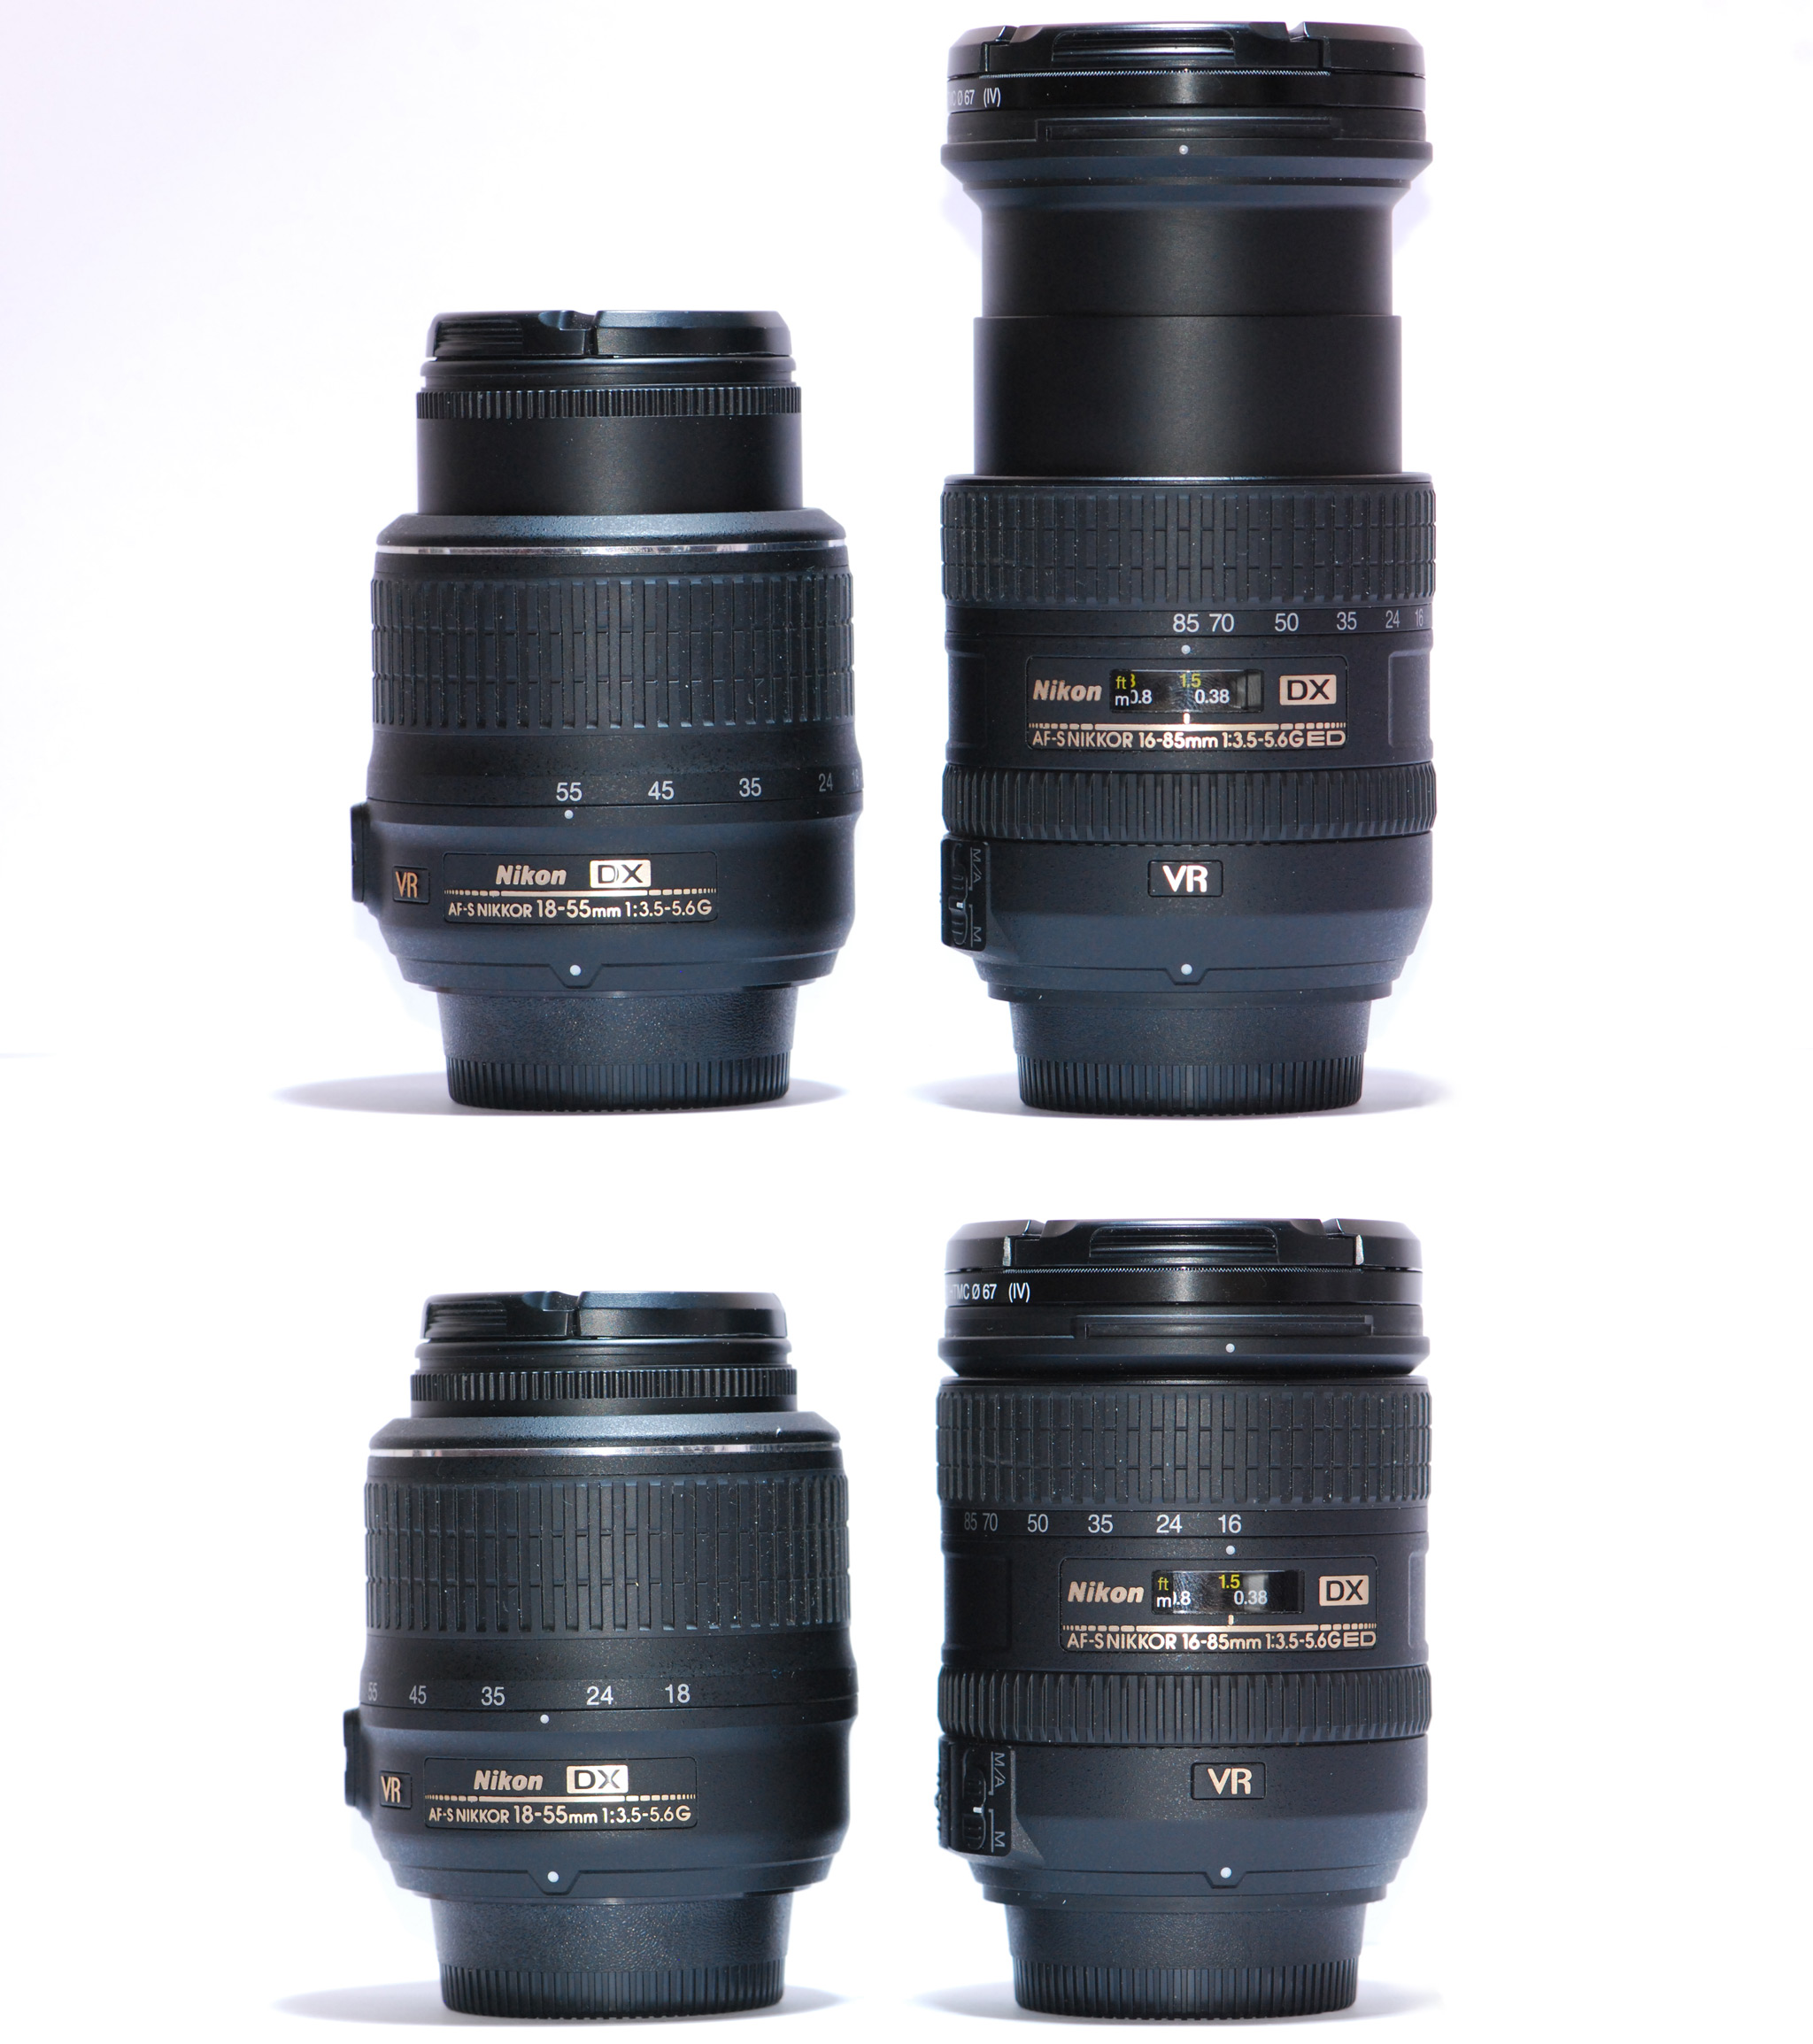 wiki List of Sigma lenses with Nikon F mount and integrated autofocus motor